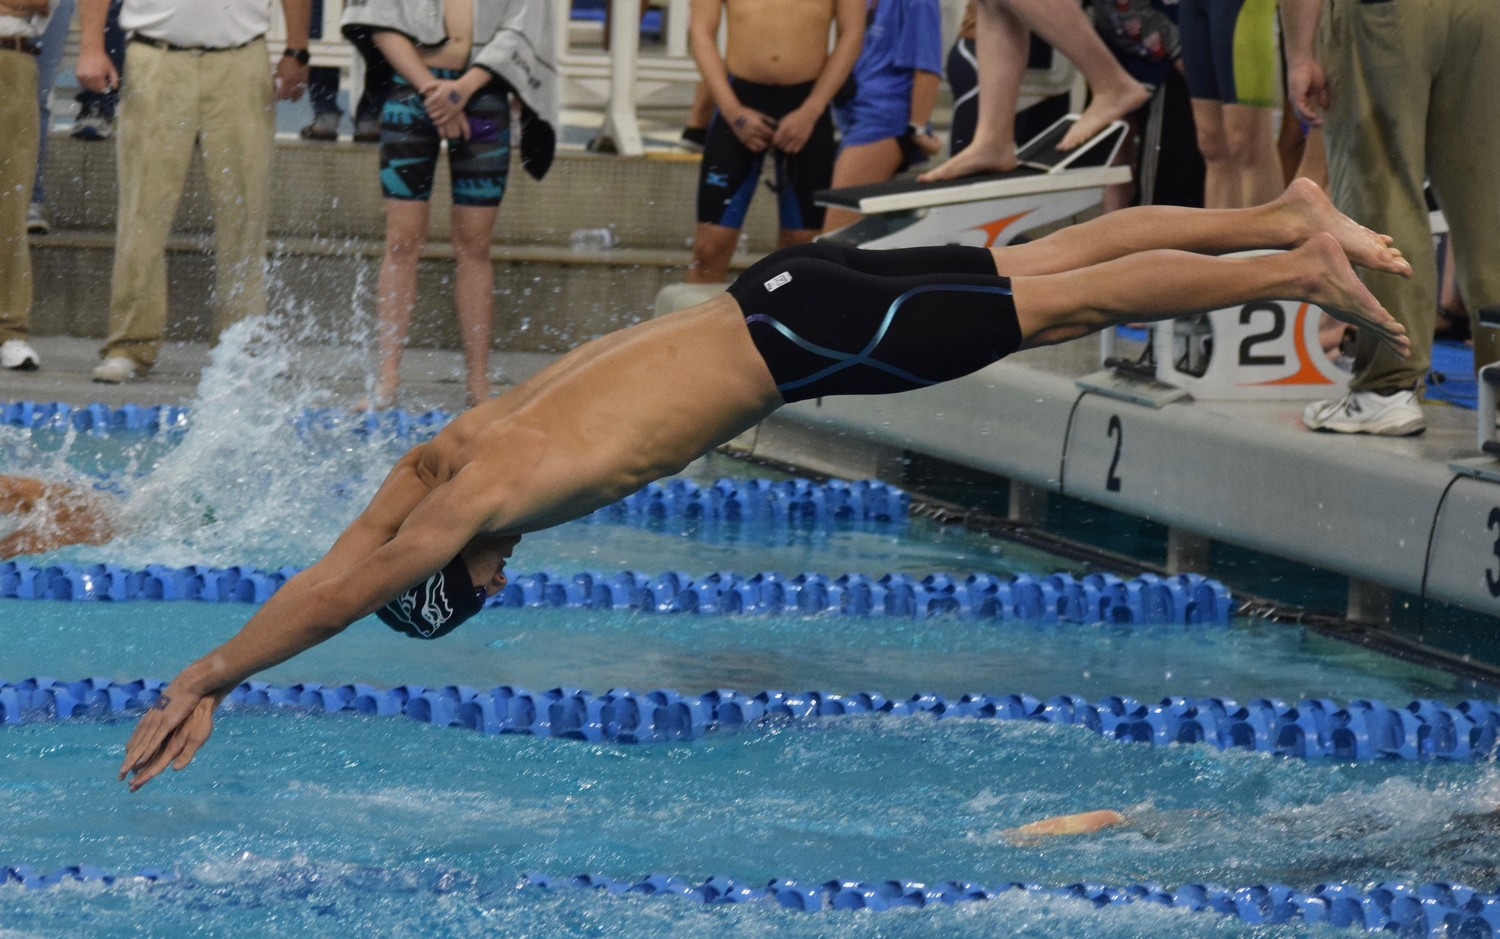 Dominic Toledo Sanchez qualified for the state final in all four events he competed in Friday afternoon at the Swimming & Diving State Meet.